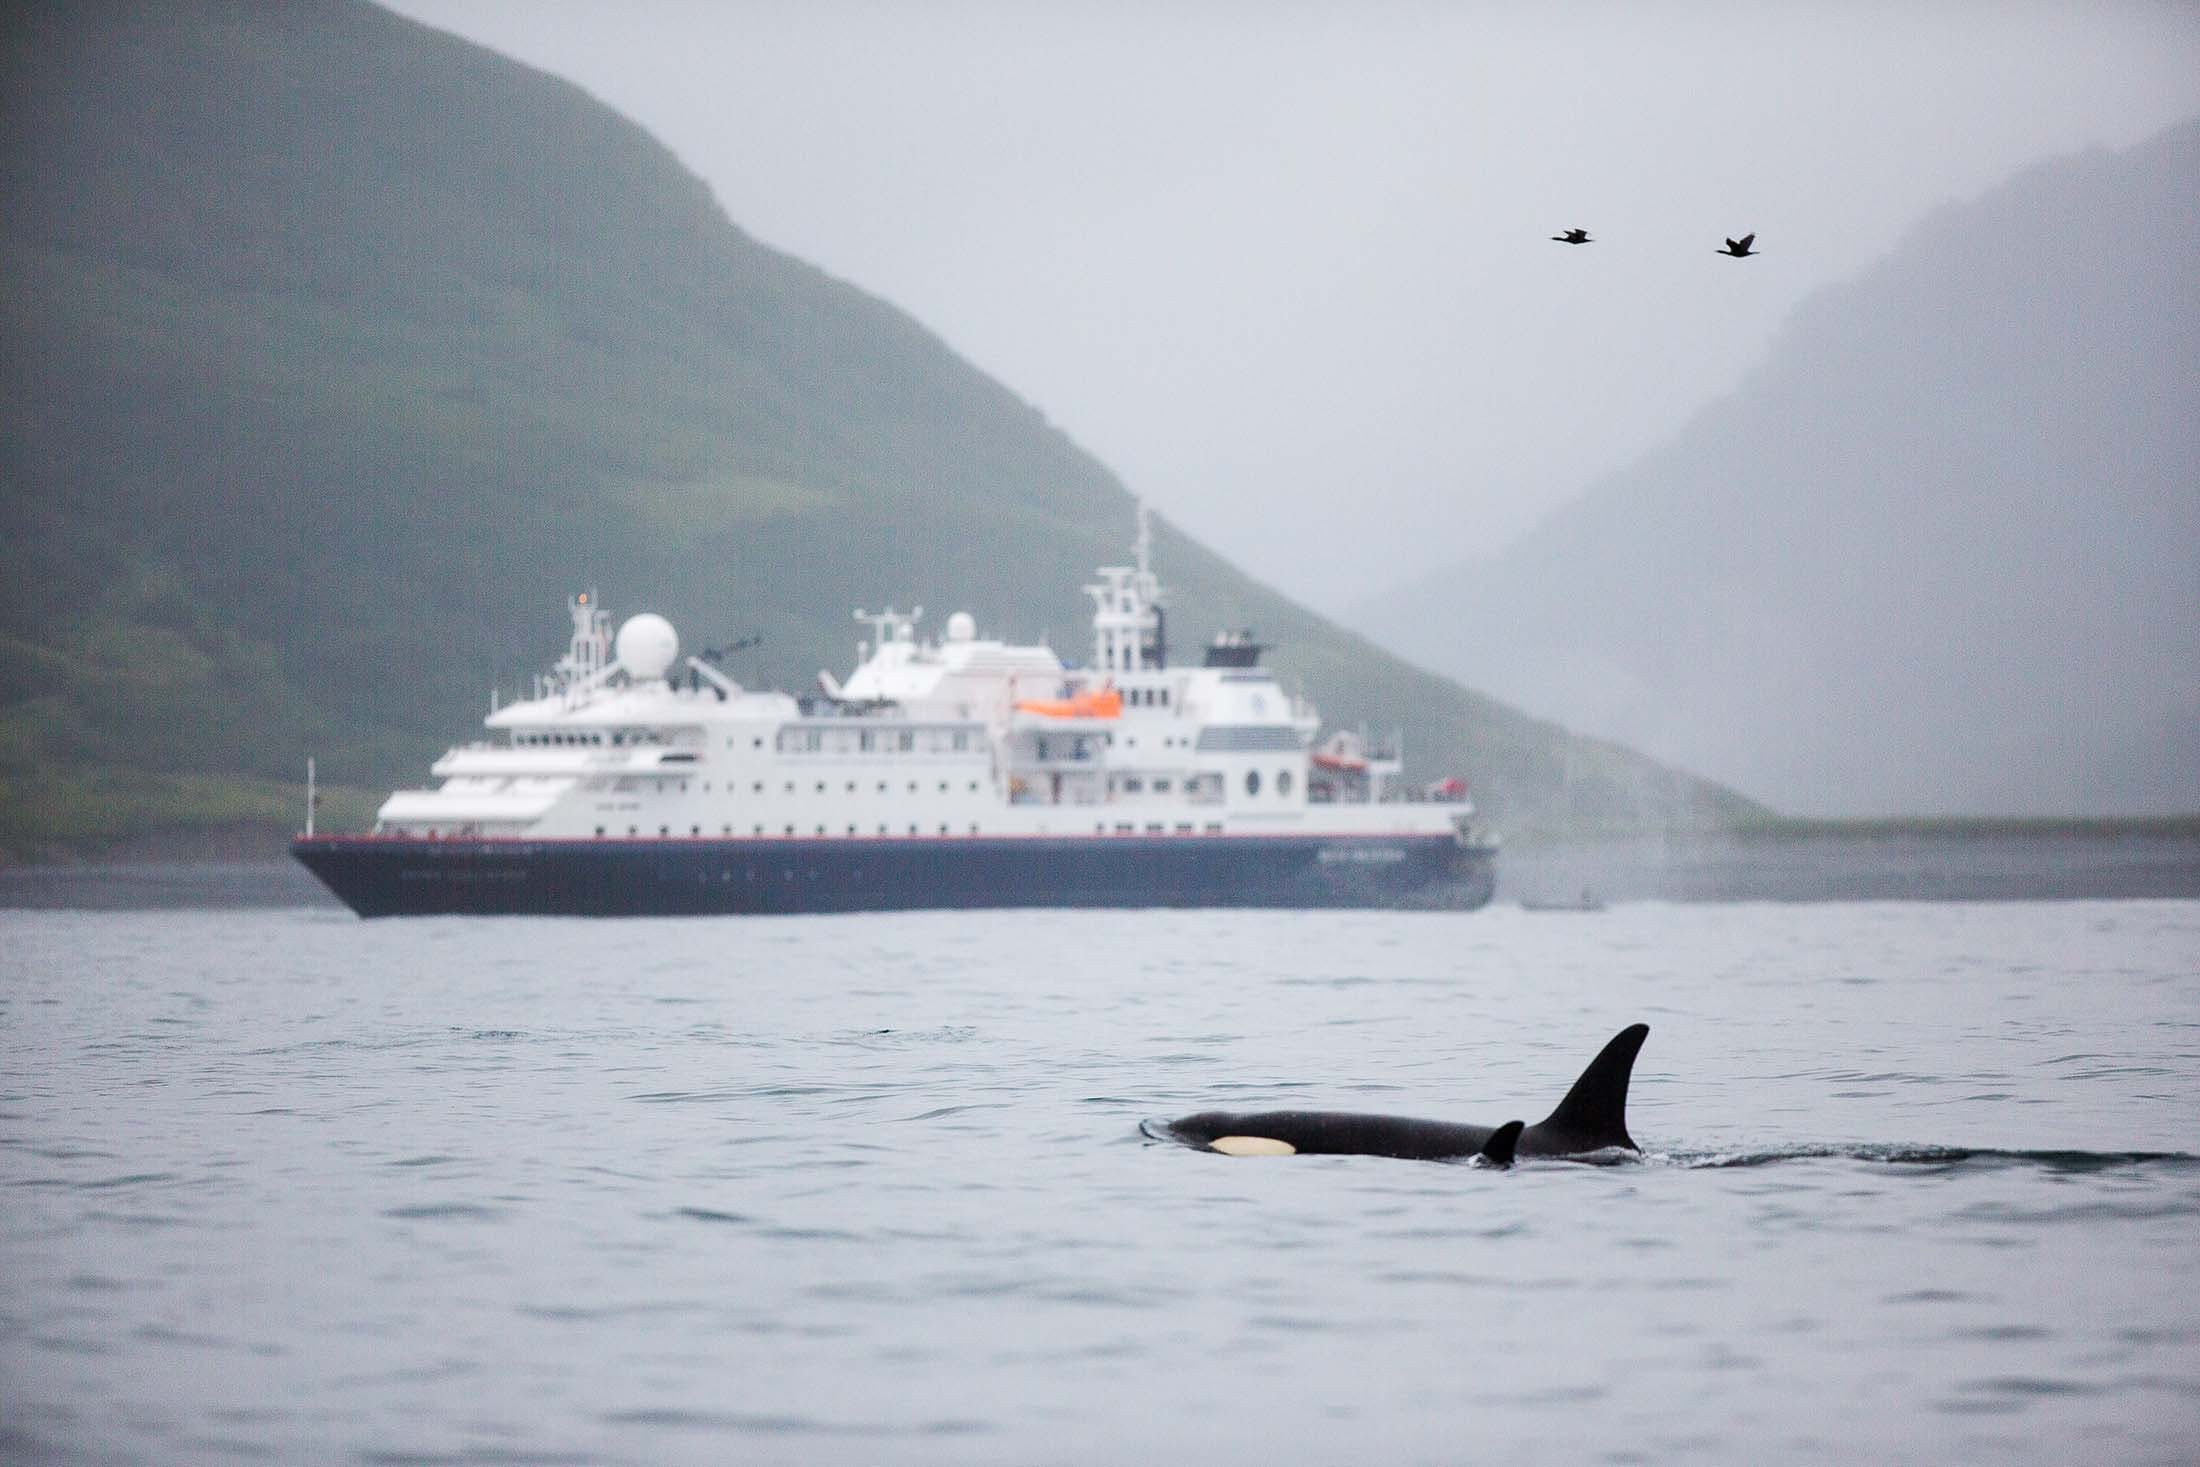 orcas in the wild - russian far east